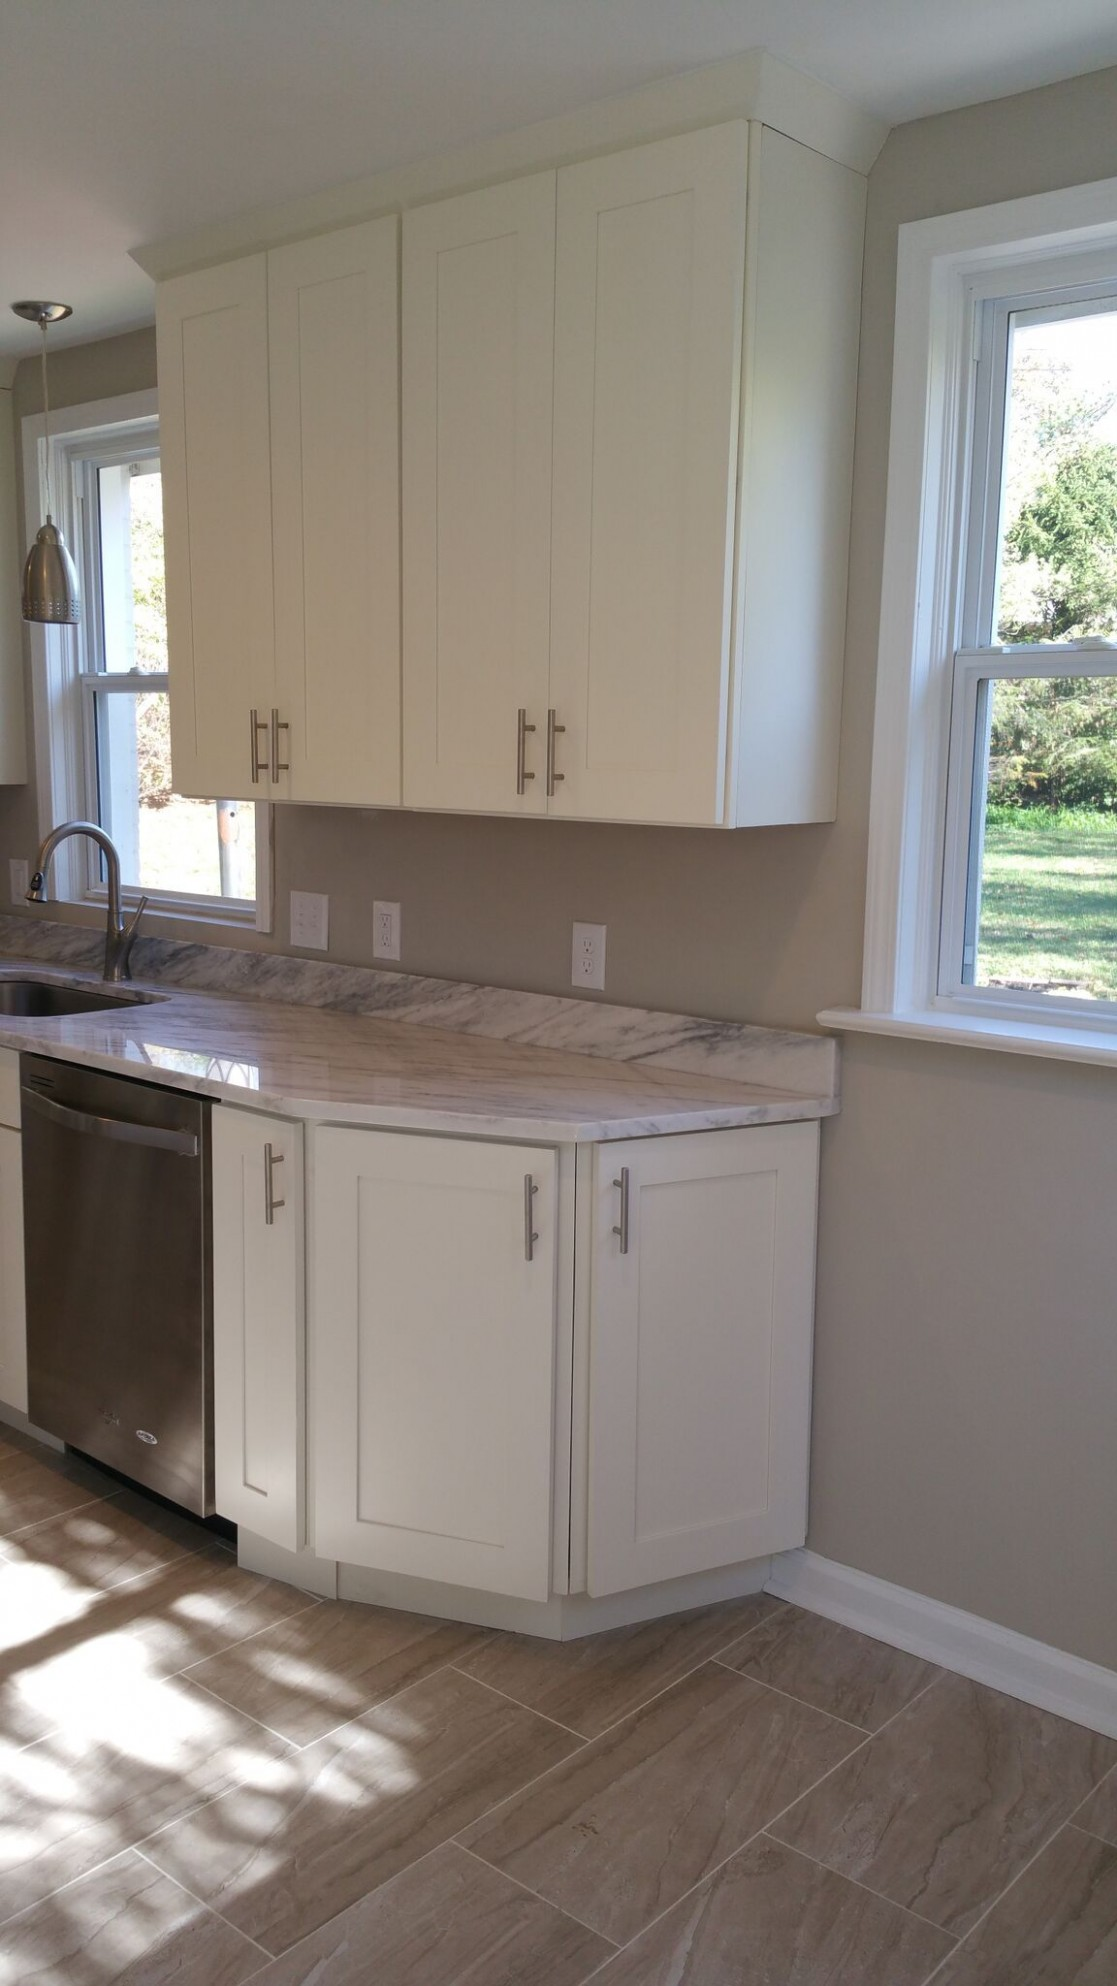 Base end angle cabinet  Kitchen cabinets and flooring, Kitchen  - Base Kitchen Cabinets Are Typically